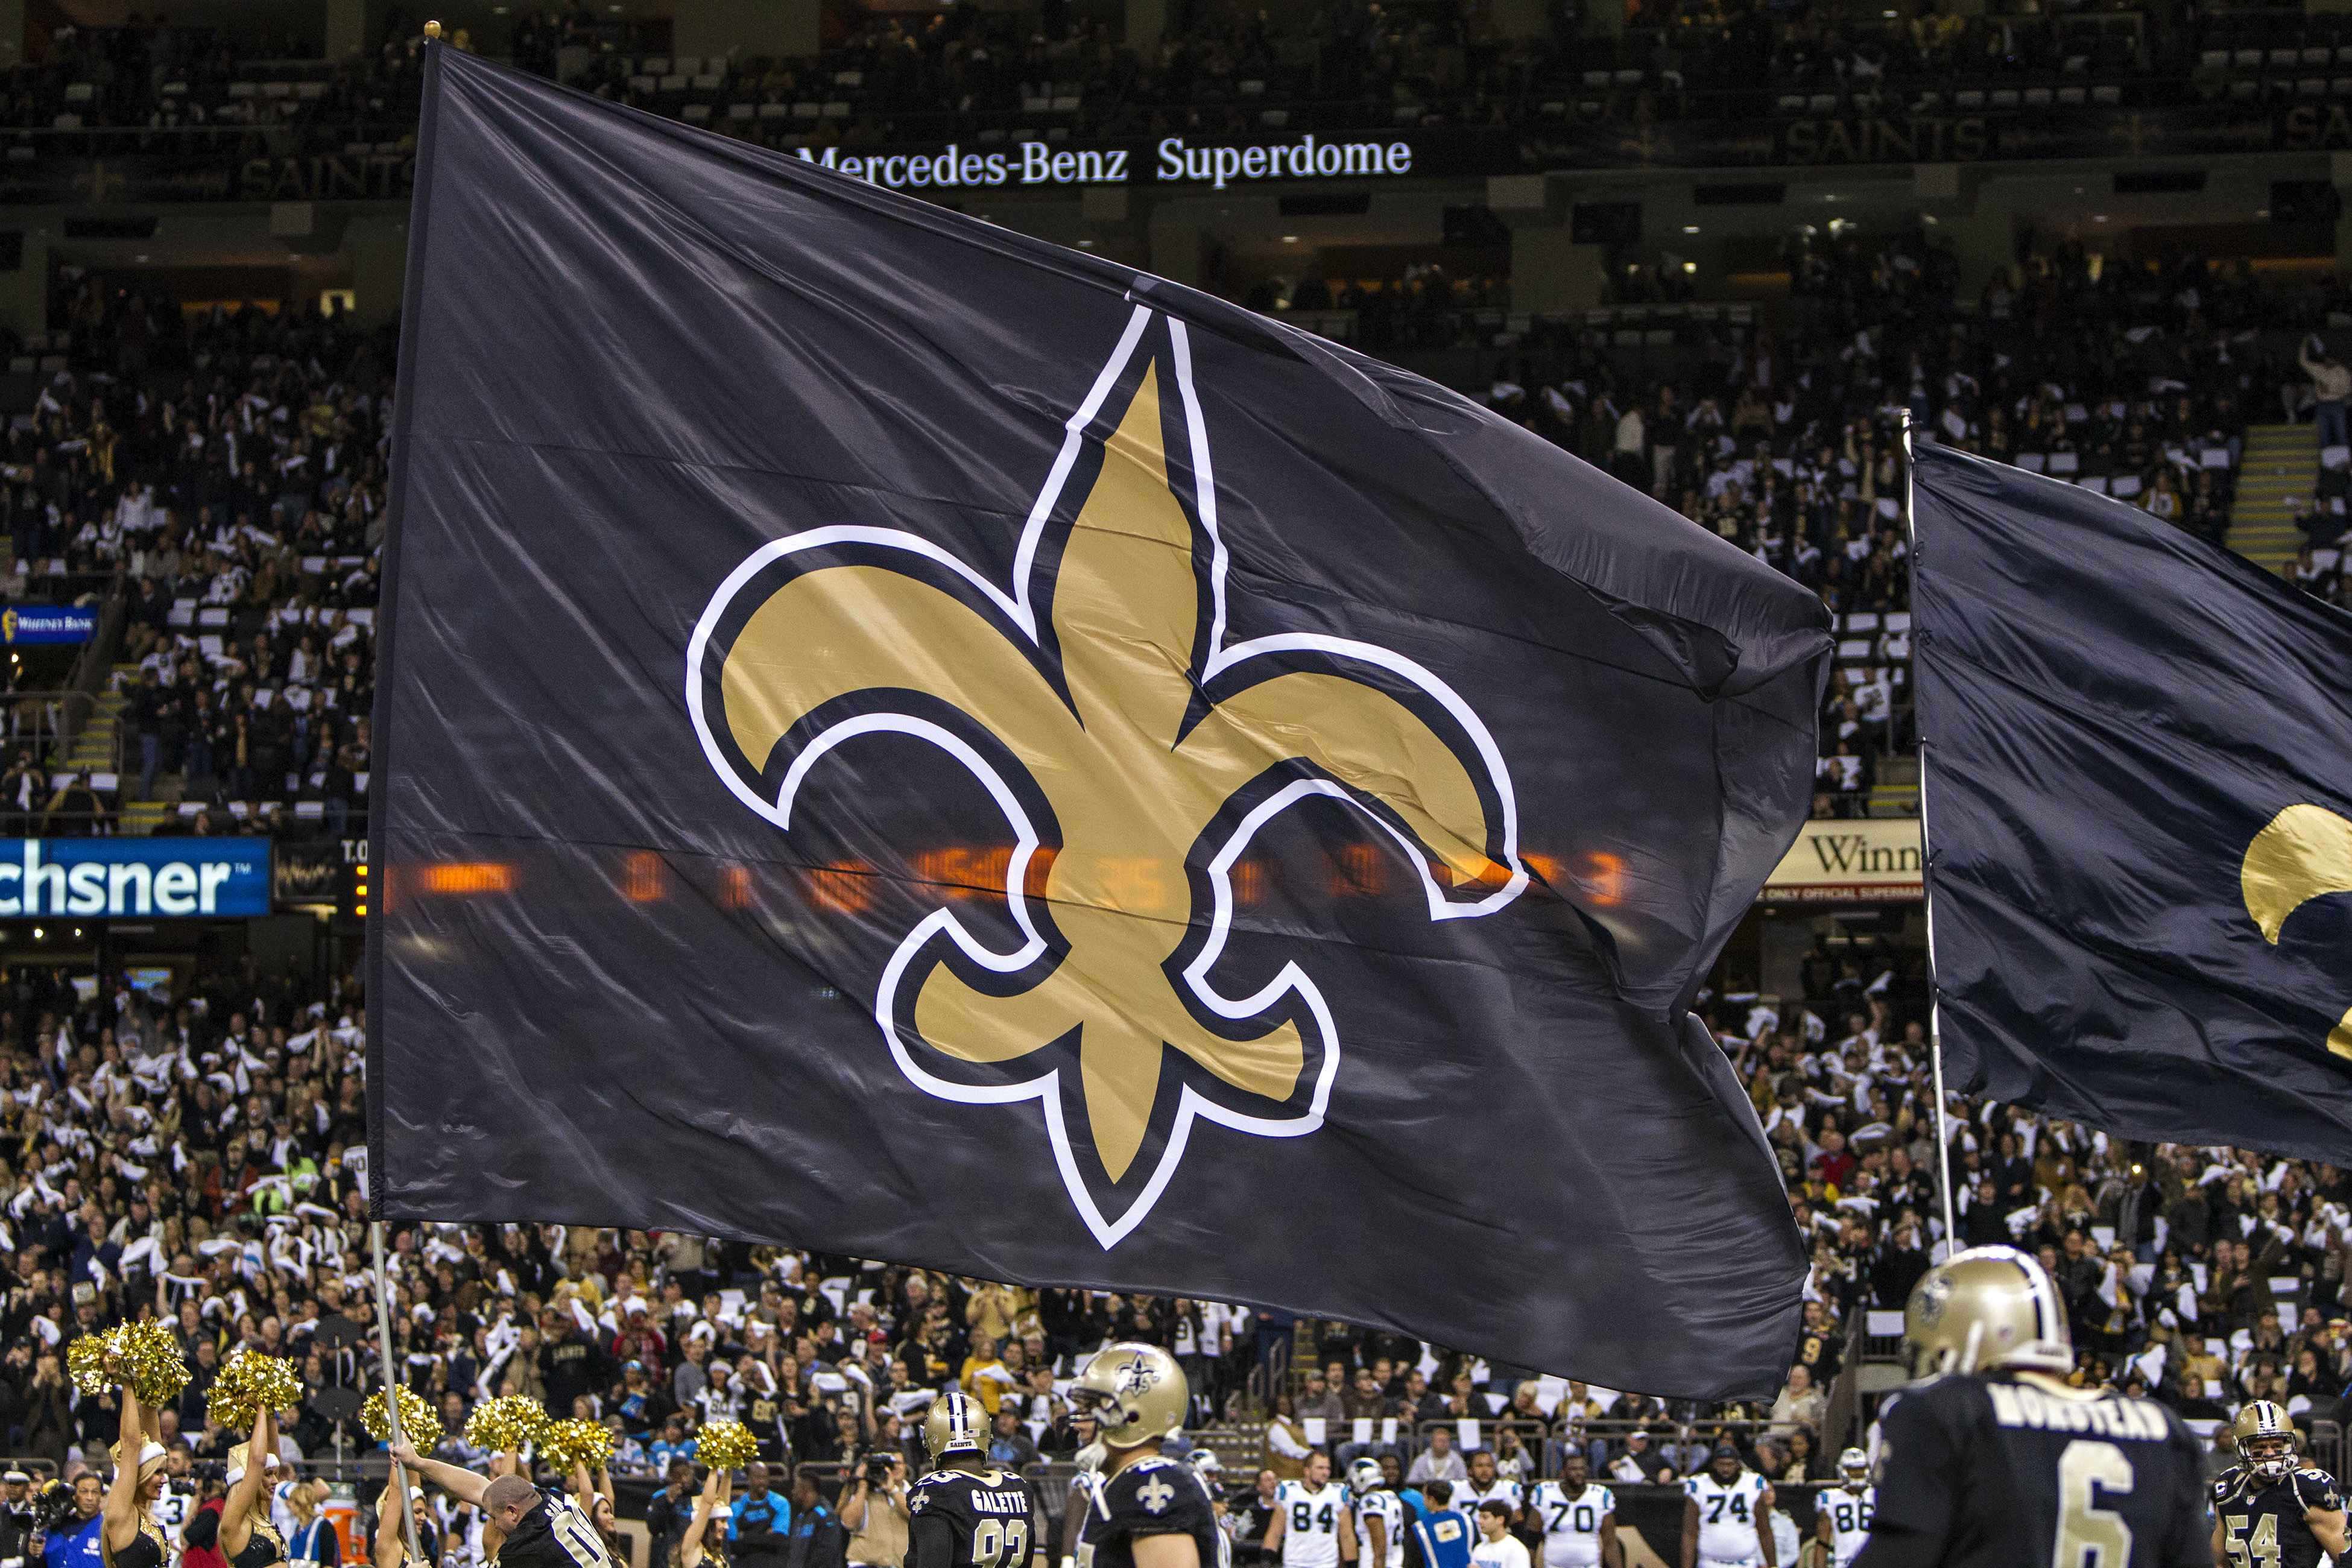 Report Historian Calling Out New Orleans Saints Symbol As A Racist